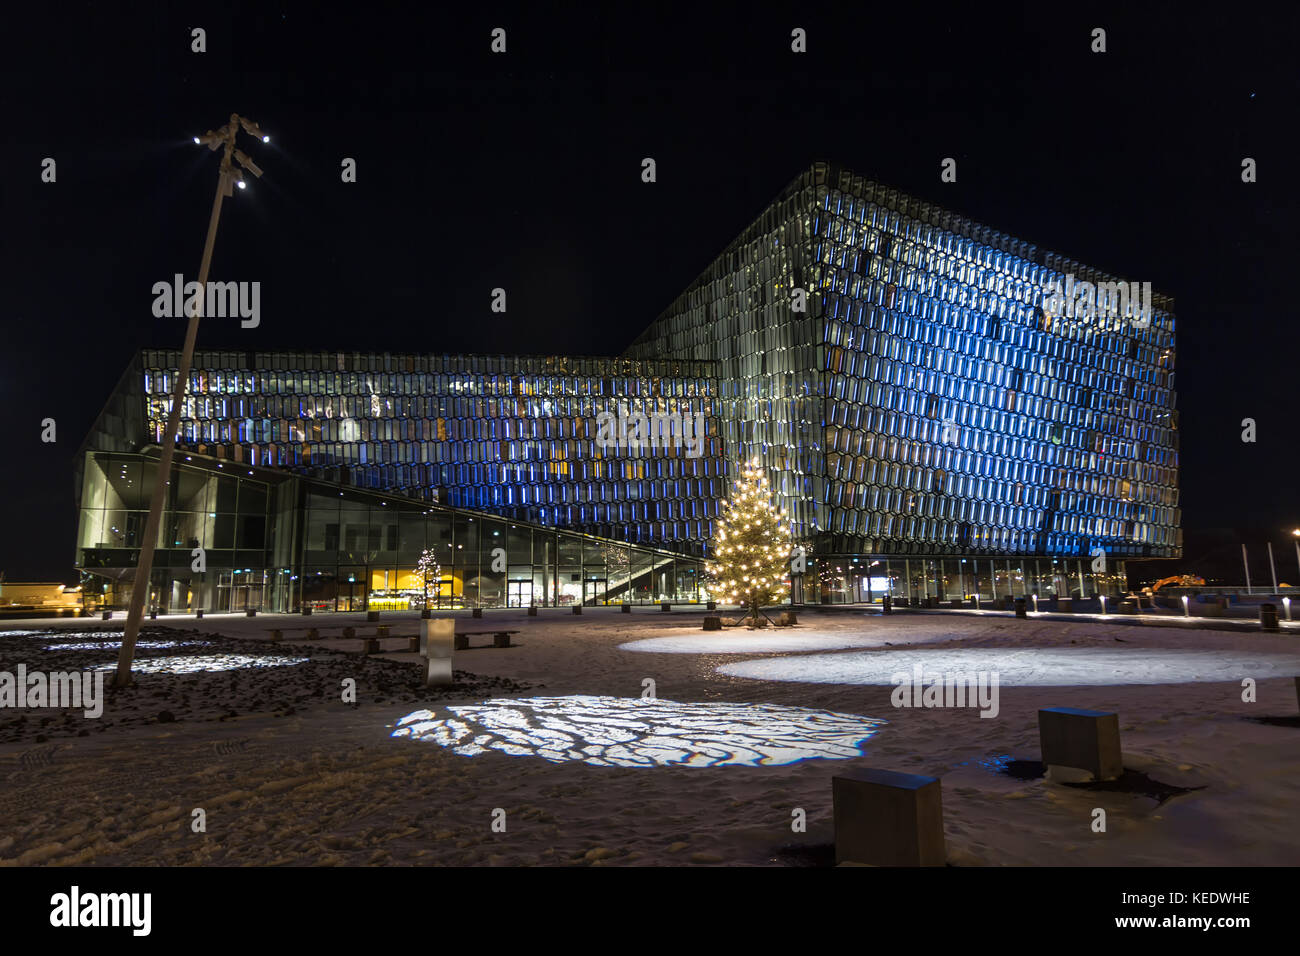 Harpa concert hall and conference center in Reykjavík, Iceland. The building features a distinctive colored glass, Stock Photo